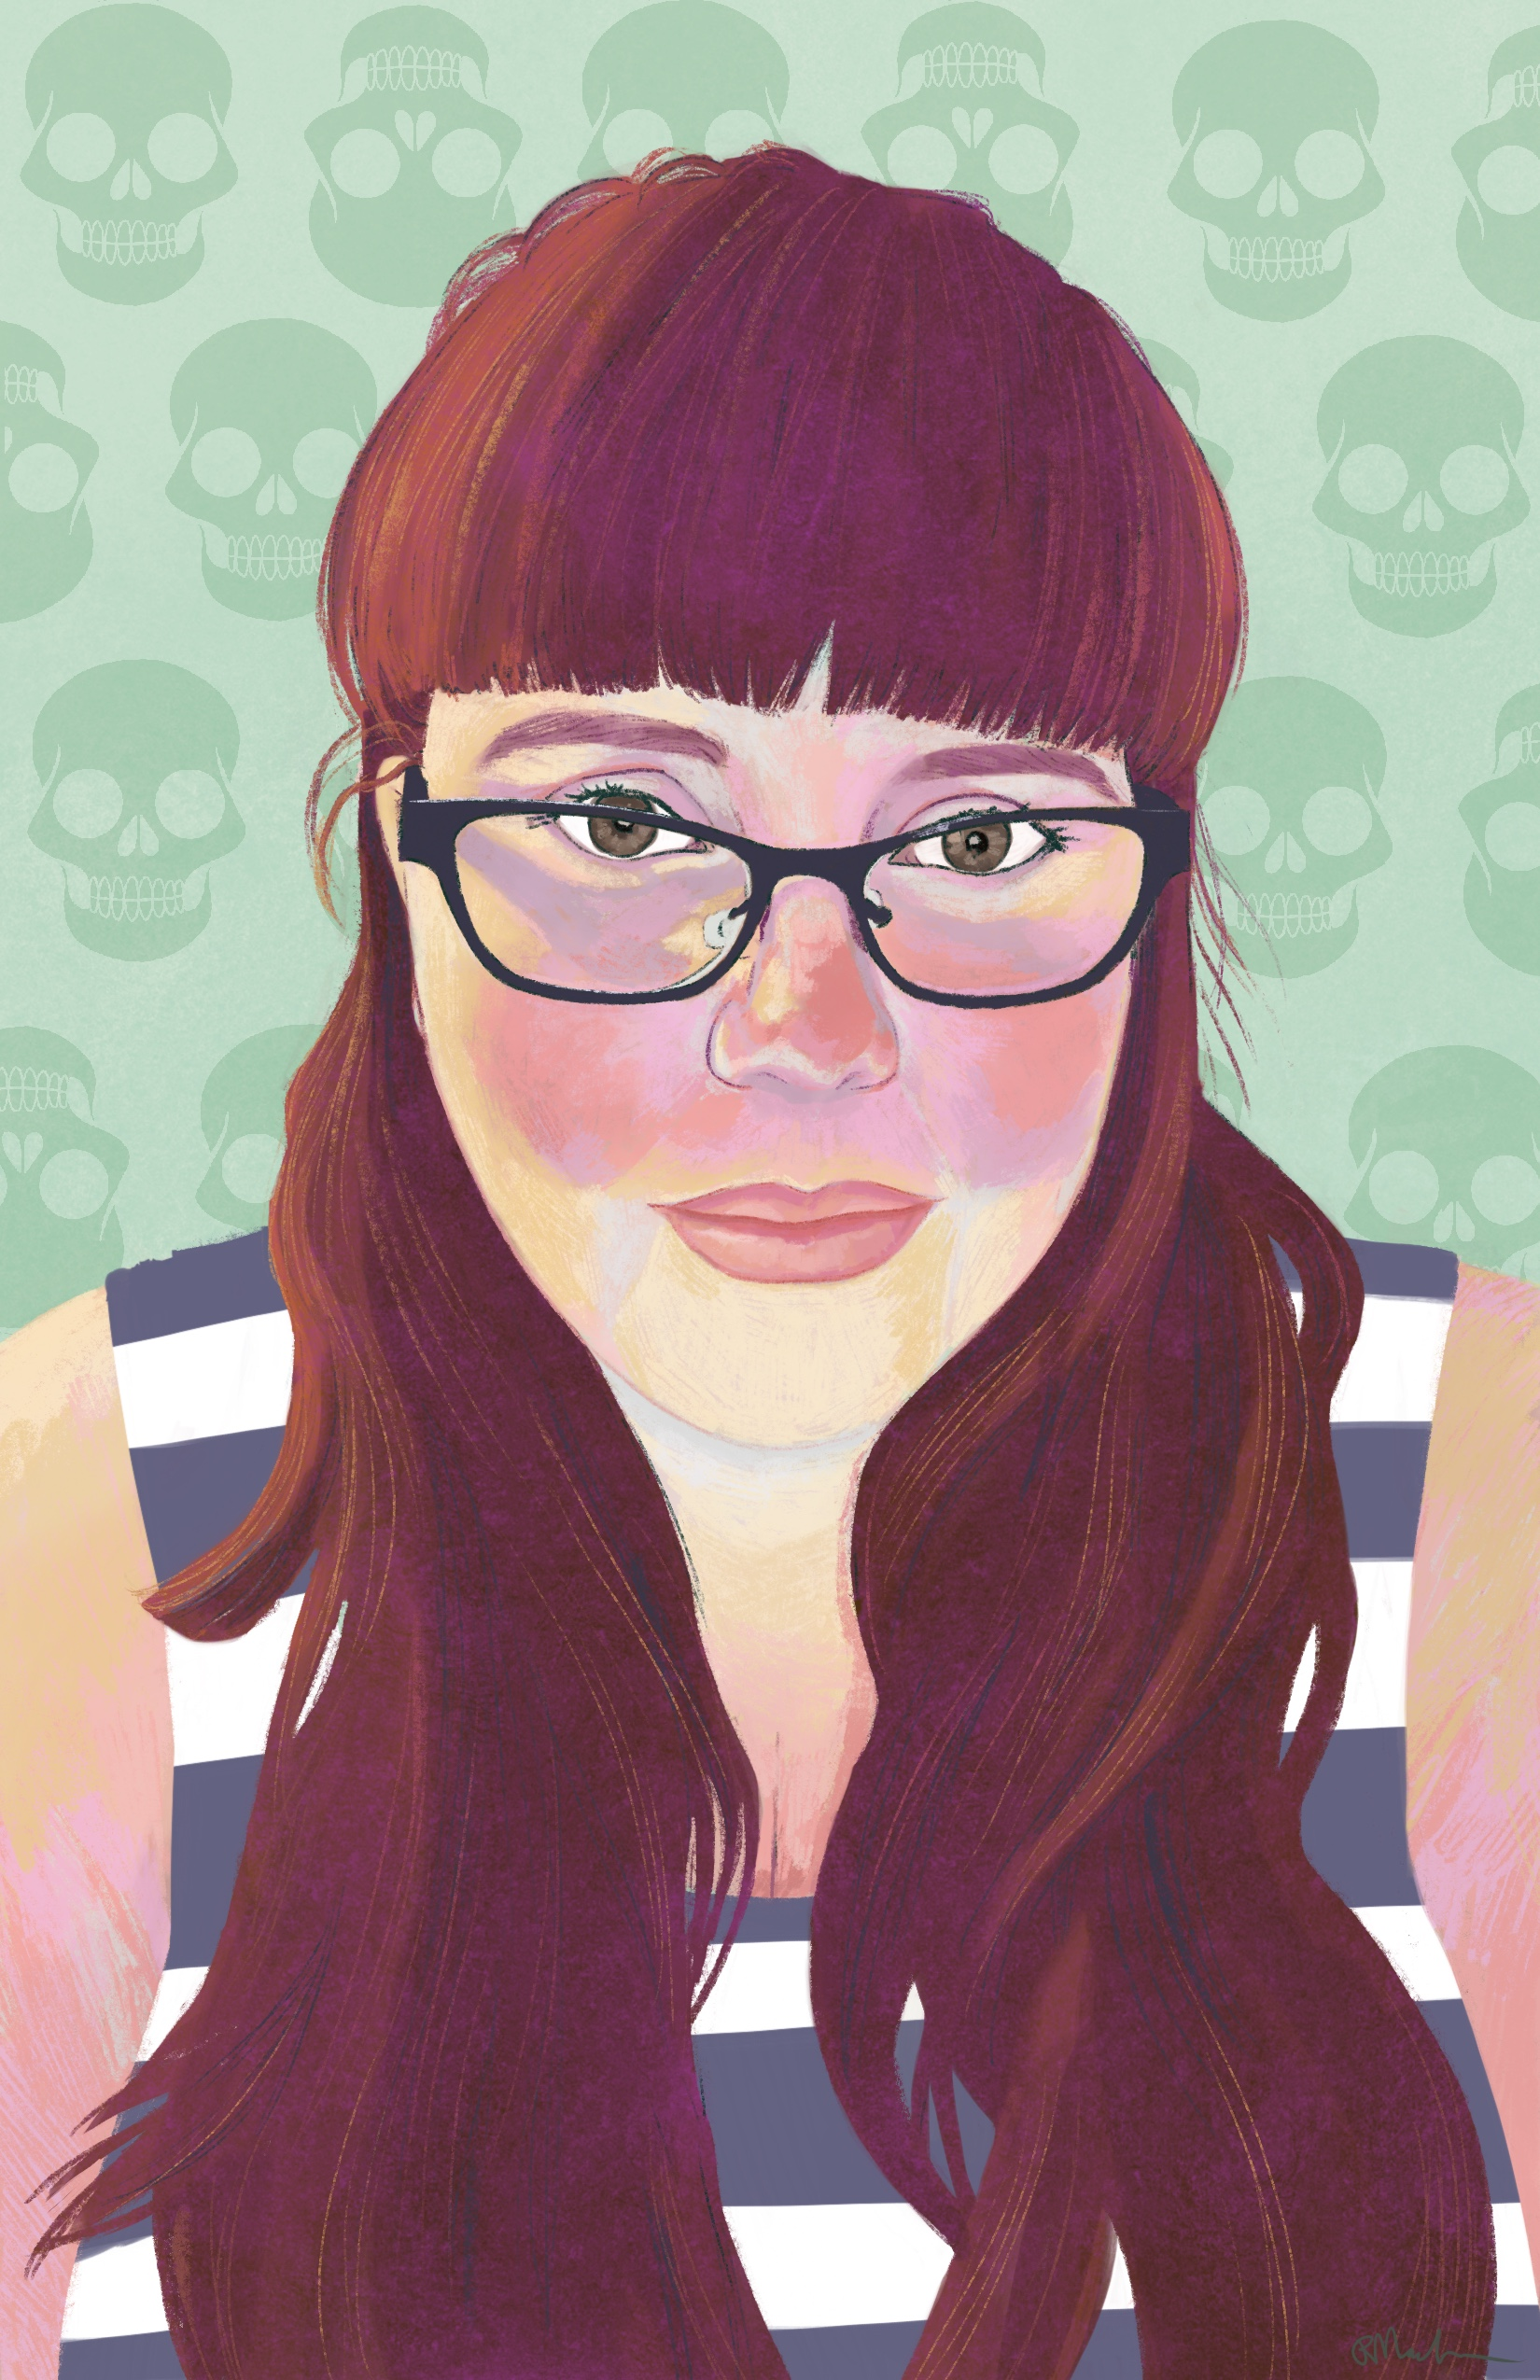 Digital painting of Amber Dawn. She is Caucasian with long red hair and black glasses. She is wearing a white and navy sleeveless top. The background is pastel green with darker green skulls.